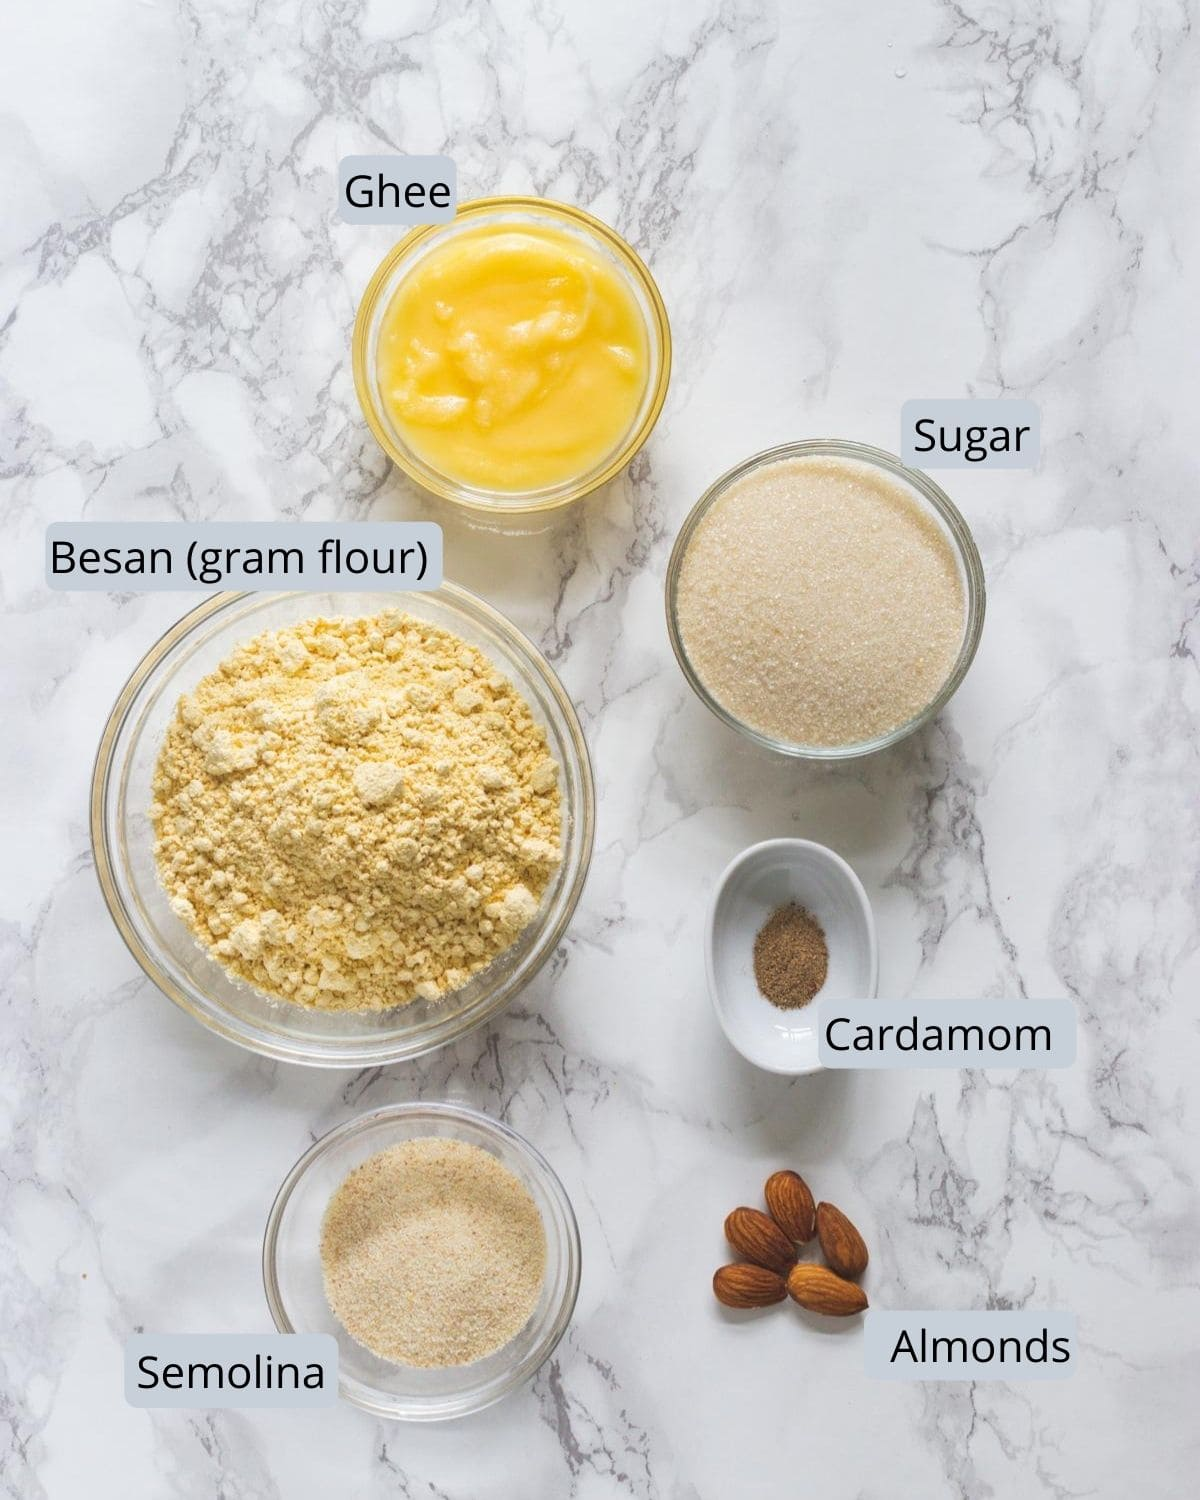 Image of ingredients for besan barfi includes besan, semolina, ghee, sugar, cardamom, almonds